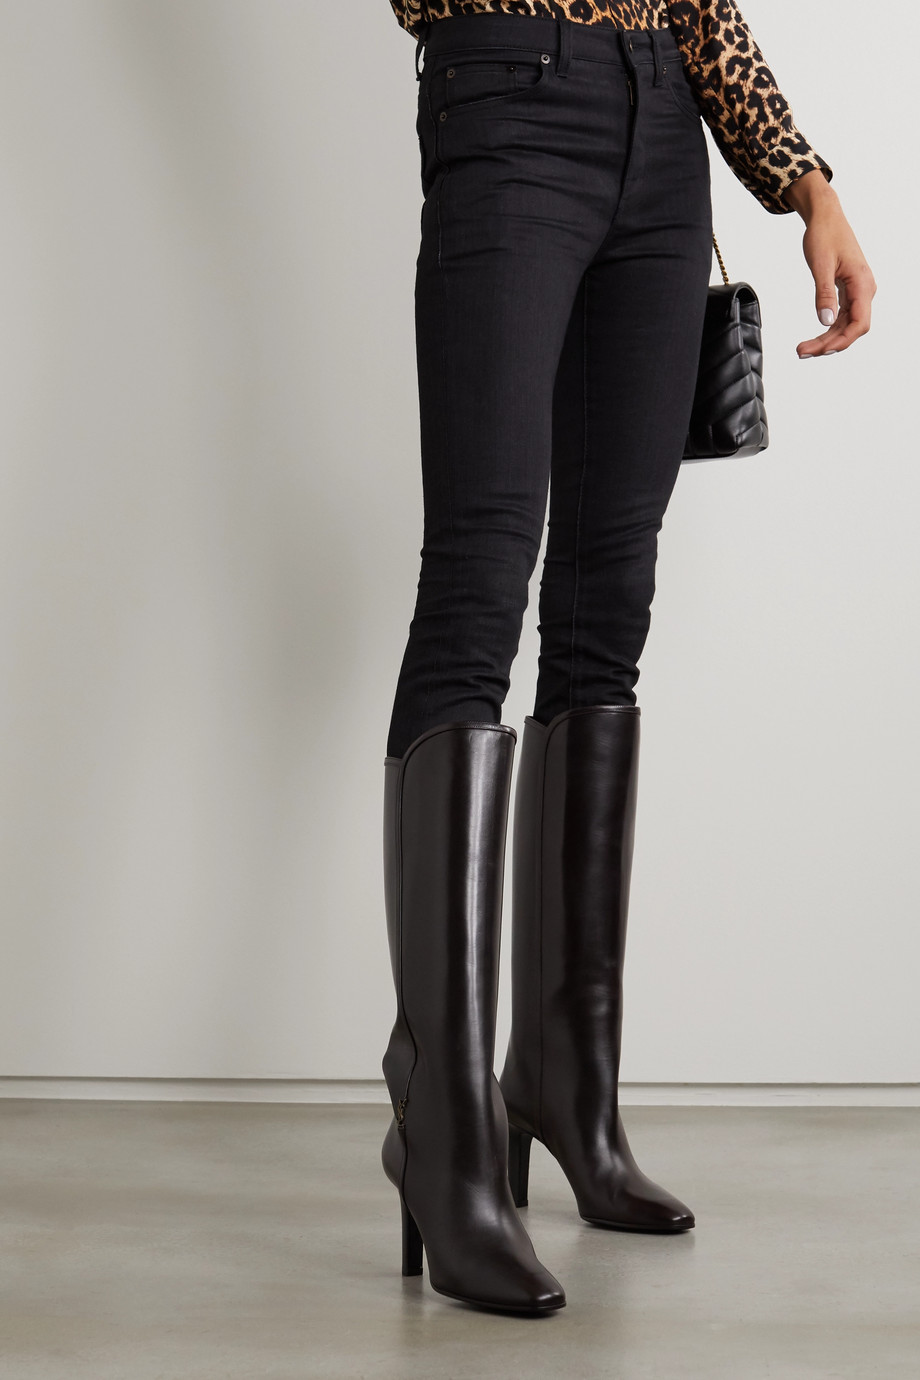 SAINT LAURENT Blu embellished leather knee boots